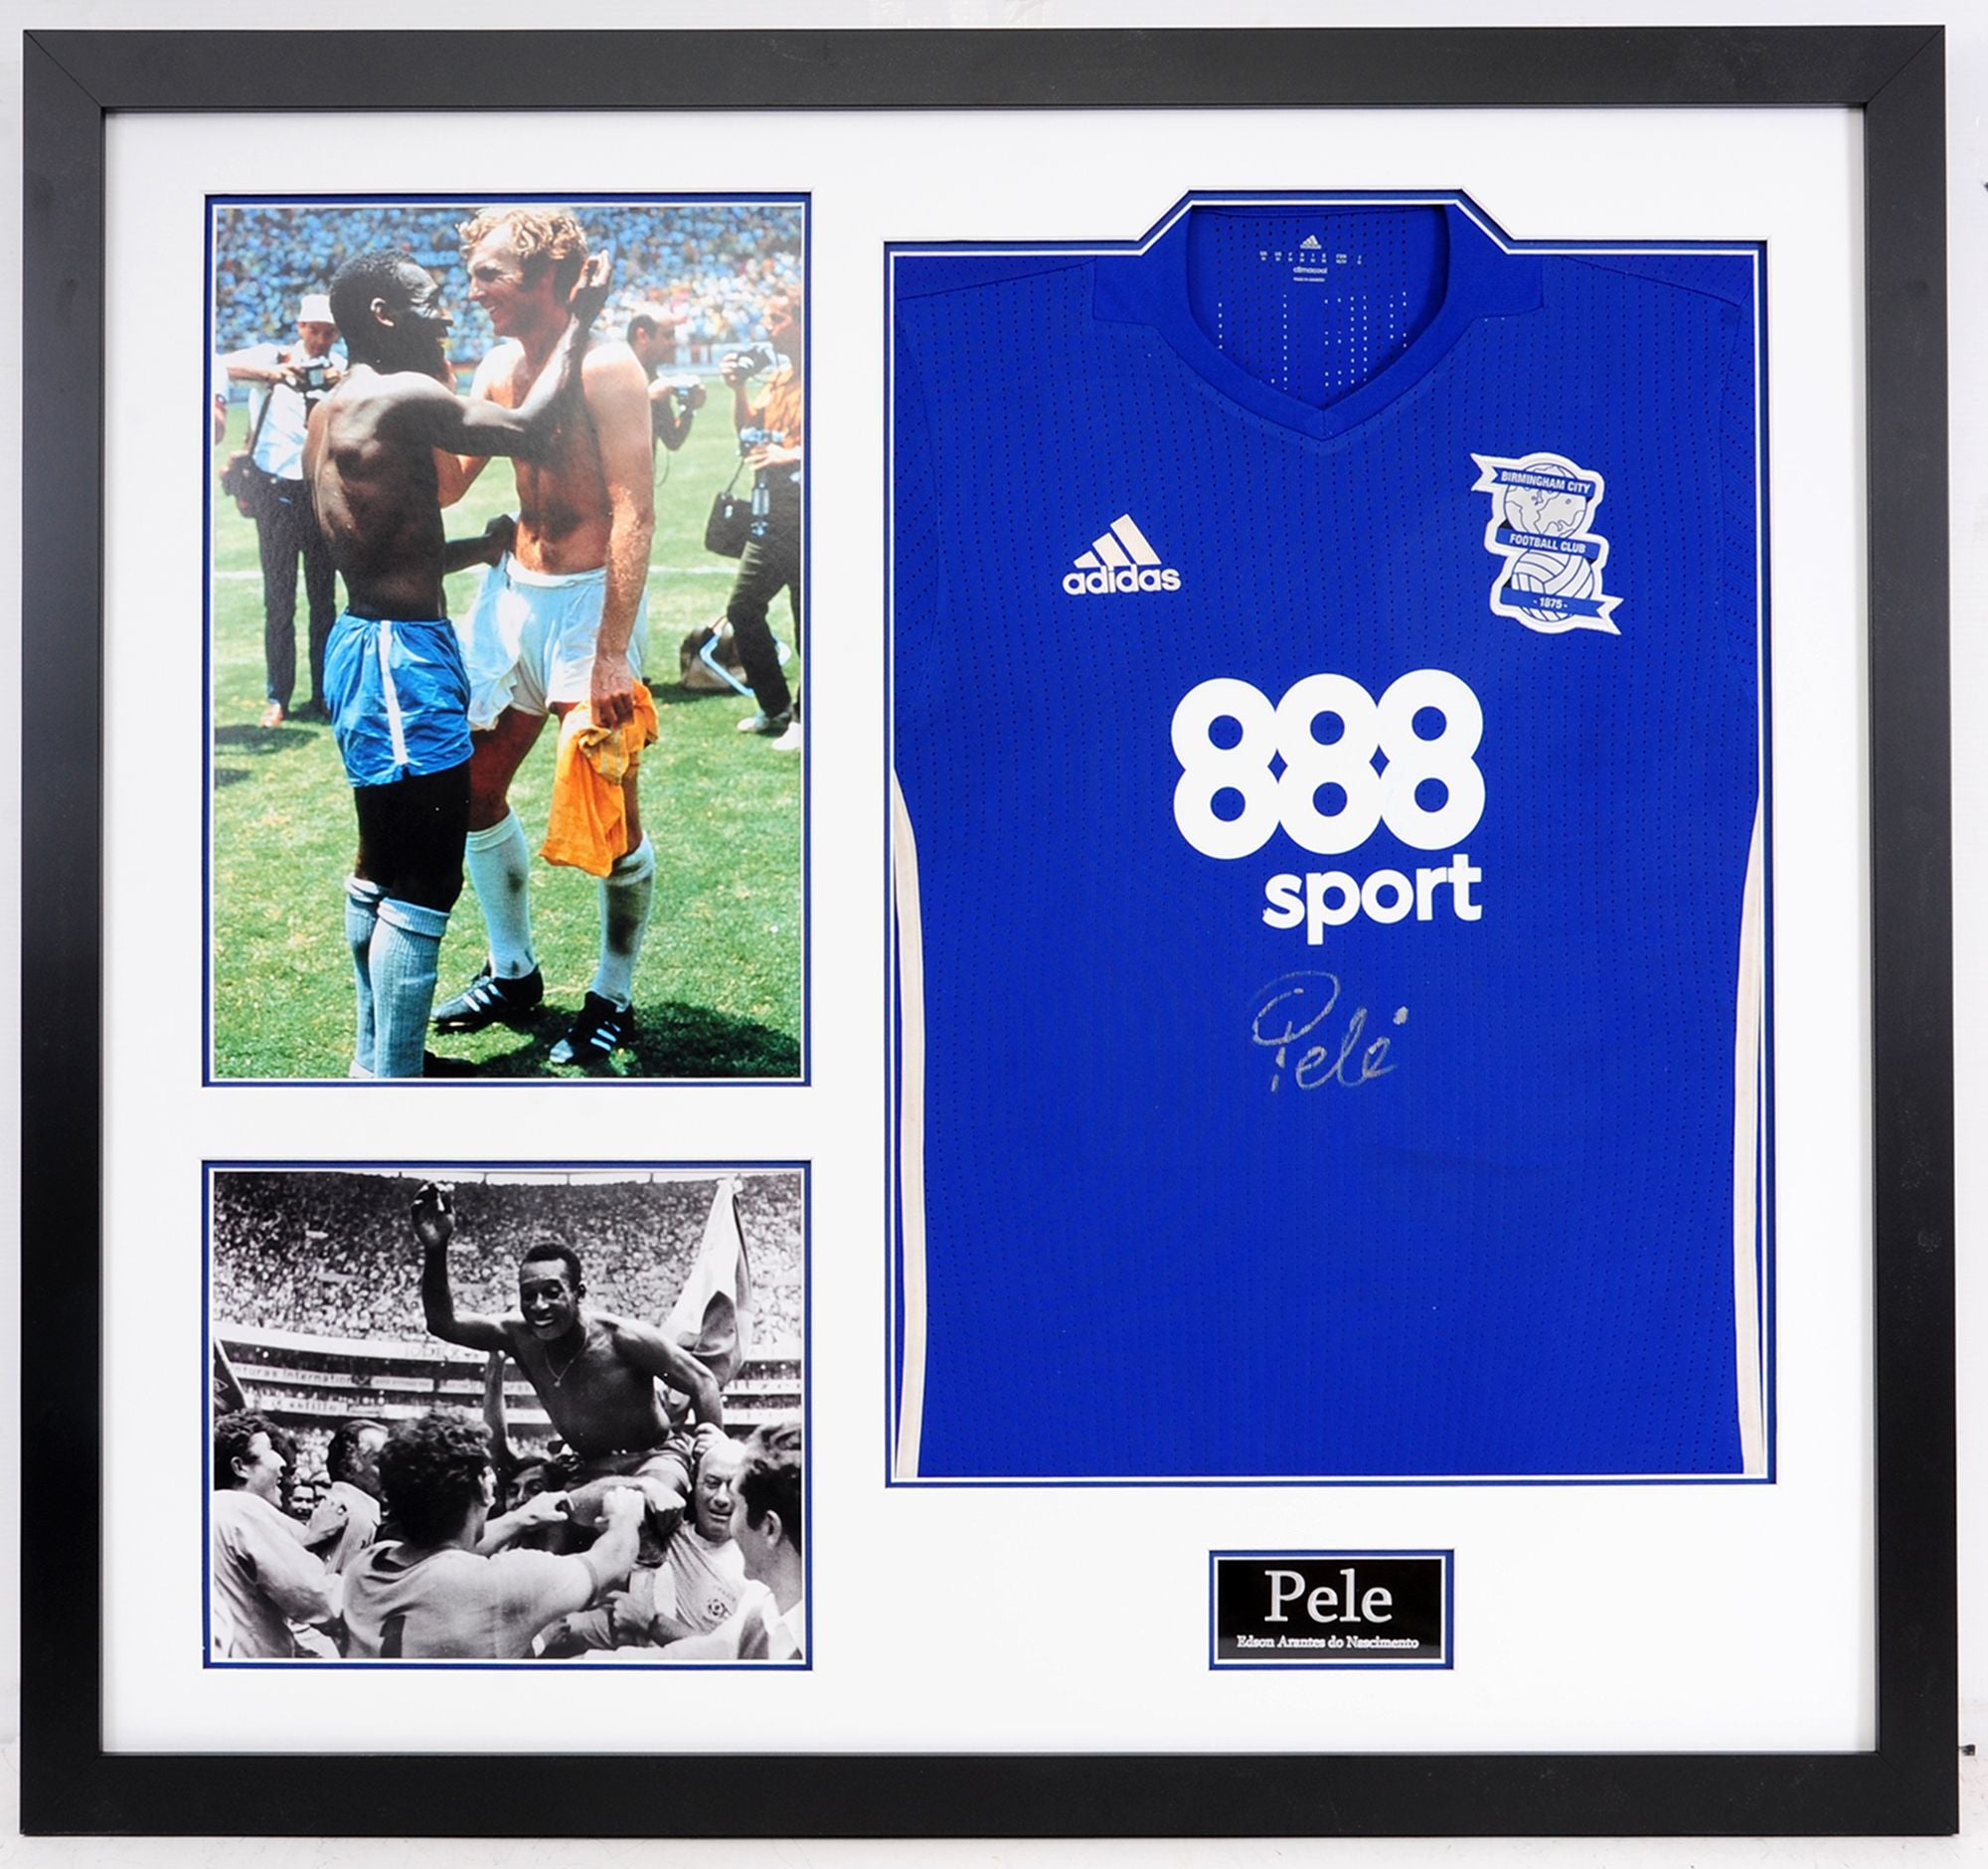 Pele Signed and Framed Birmingham City Shirt - Incredible piece